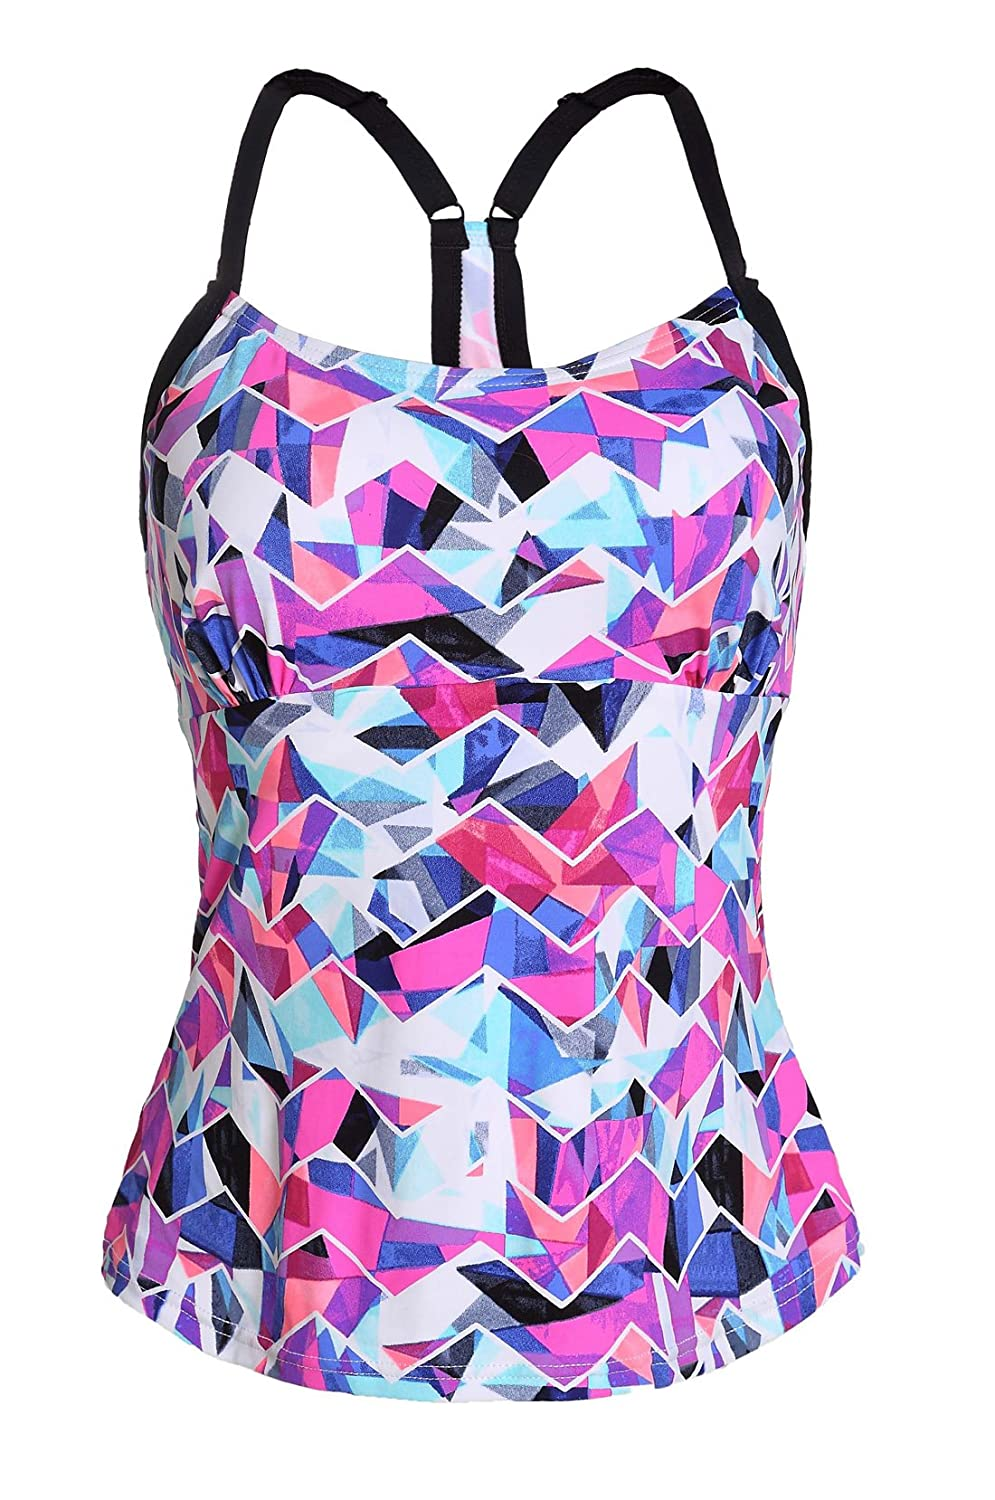 0a5724bac3a27 Charmleaks Womens Push Up Rash Guard Tankini Tops Swimsuits Tankinis  Swimwear Two-Piece Tops The Modest rainbow bandeau swim top could easily  pair with any ...